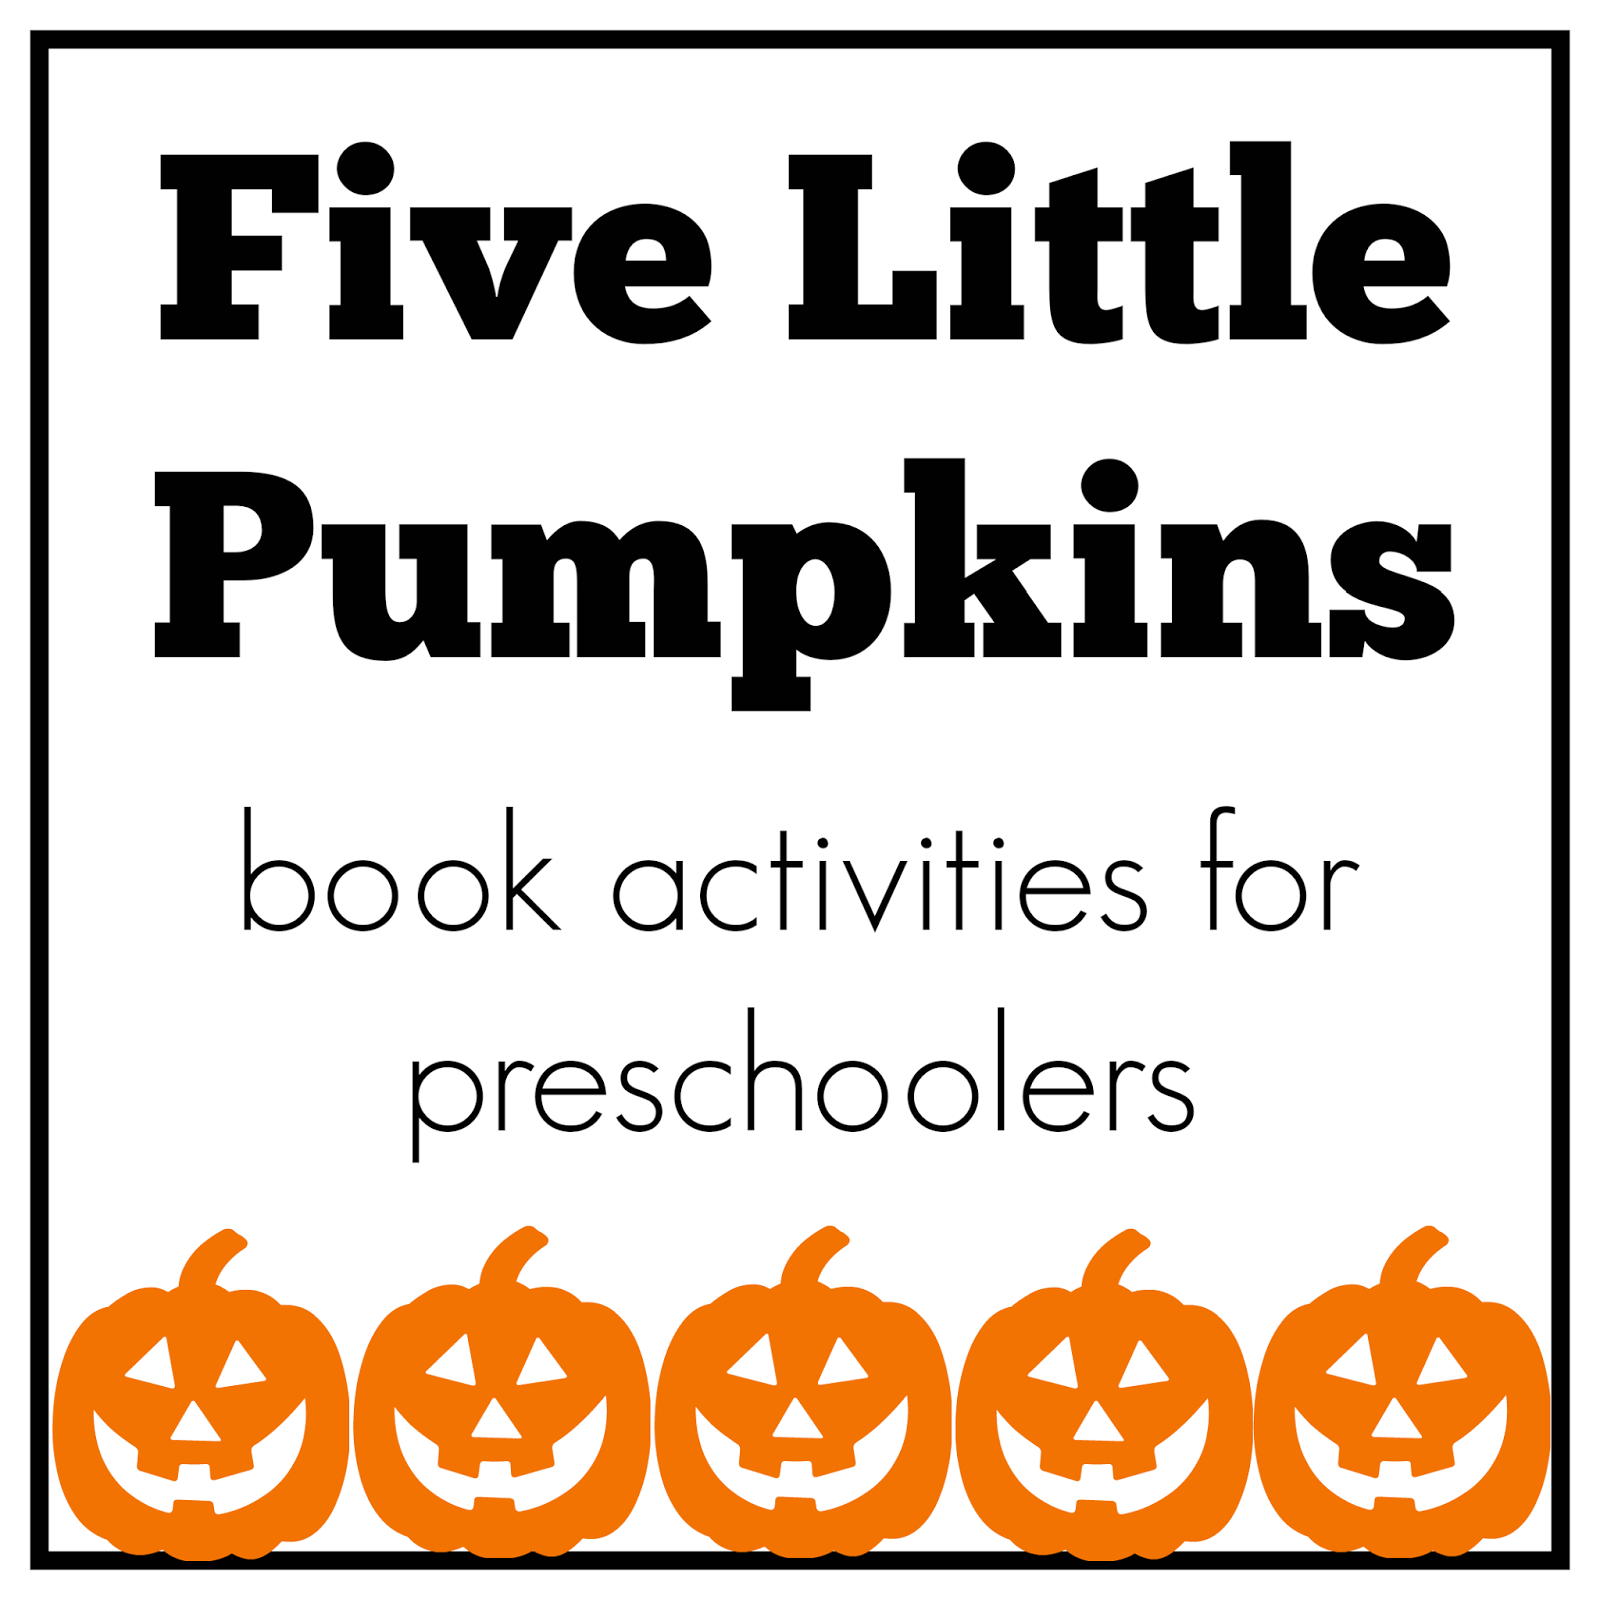 This is an image of 5 Little Pumpkins Printable throughout classroom